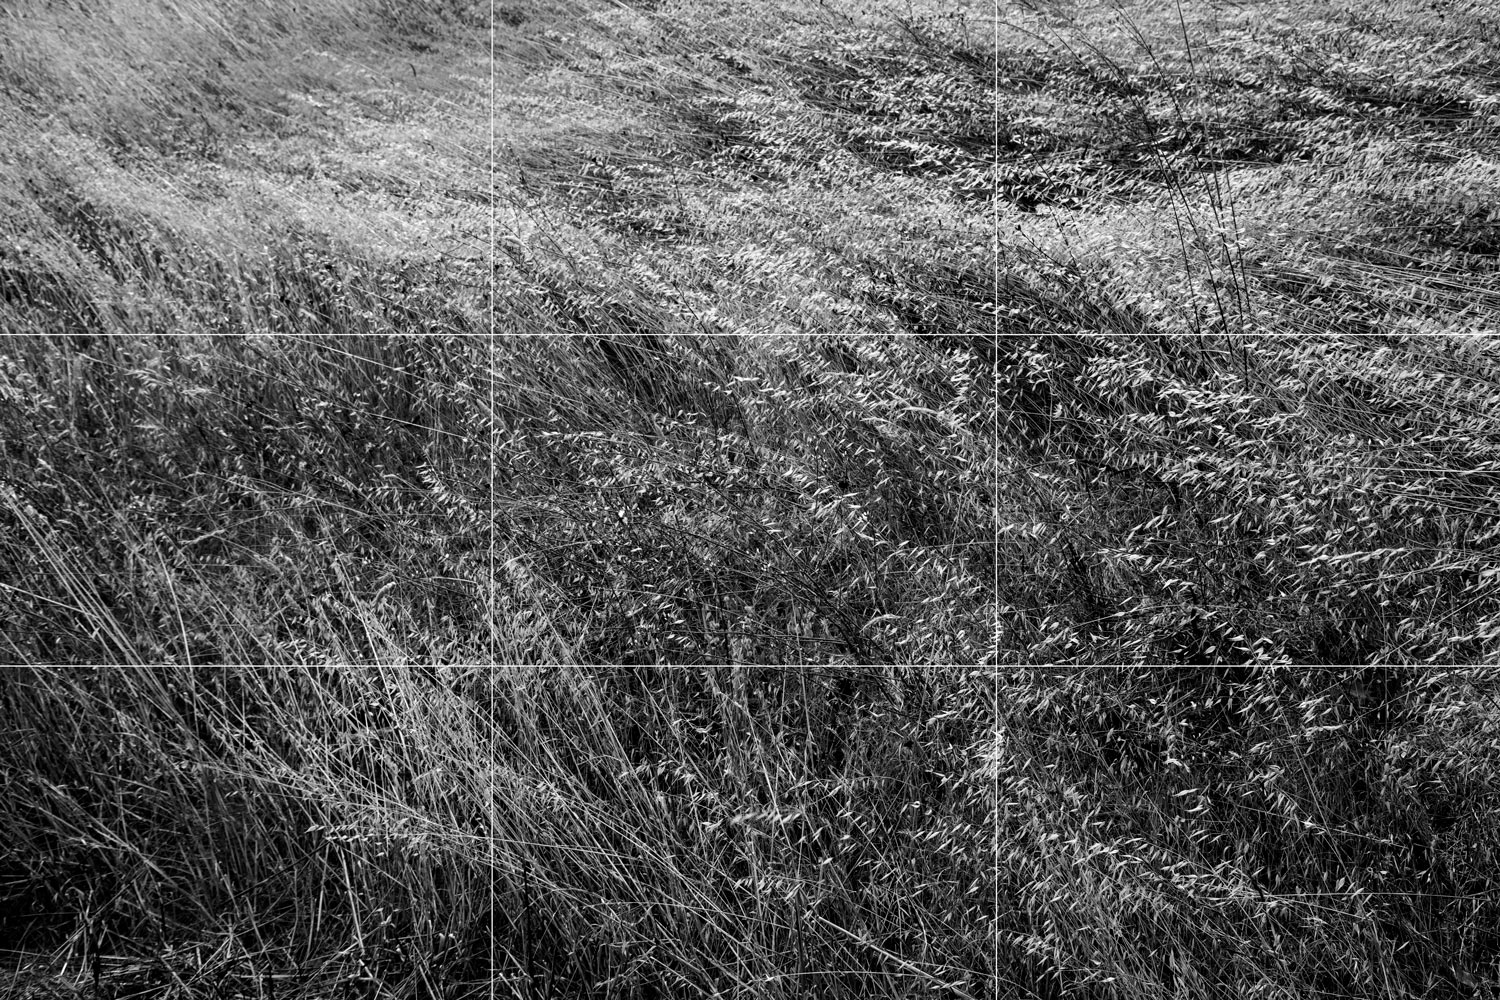 Rule of thirds examples a grassy field in black and white.